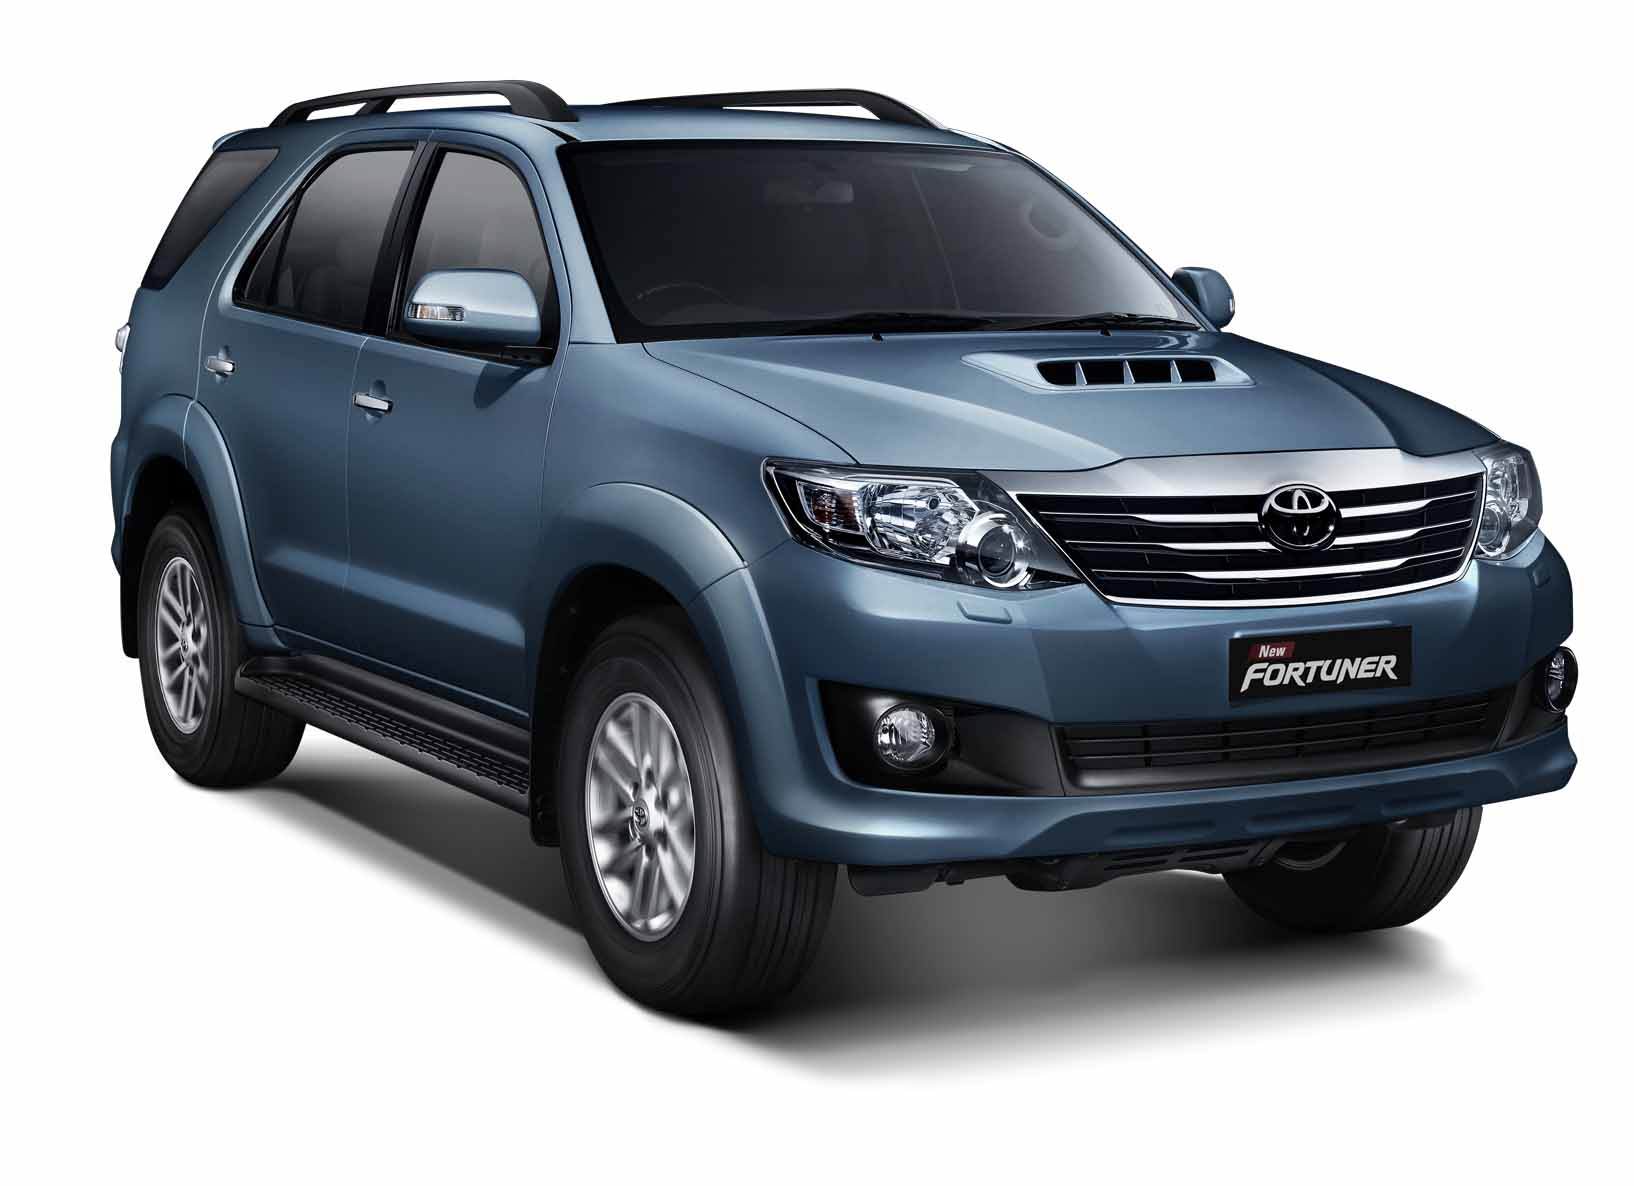 April 7, 2012-New-Toyota-Fortuner.jpg